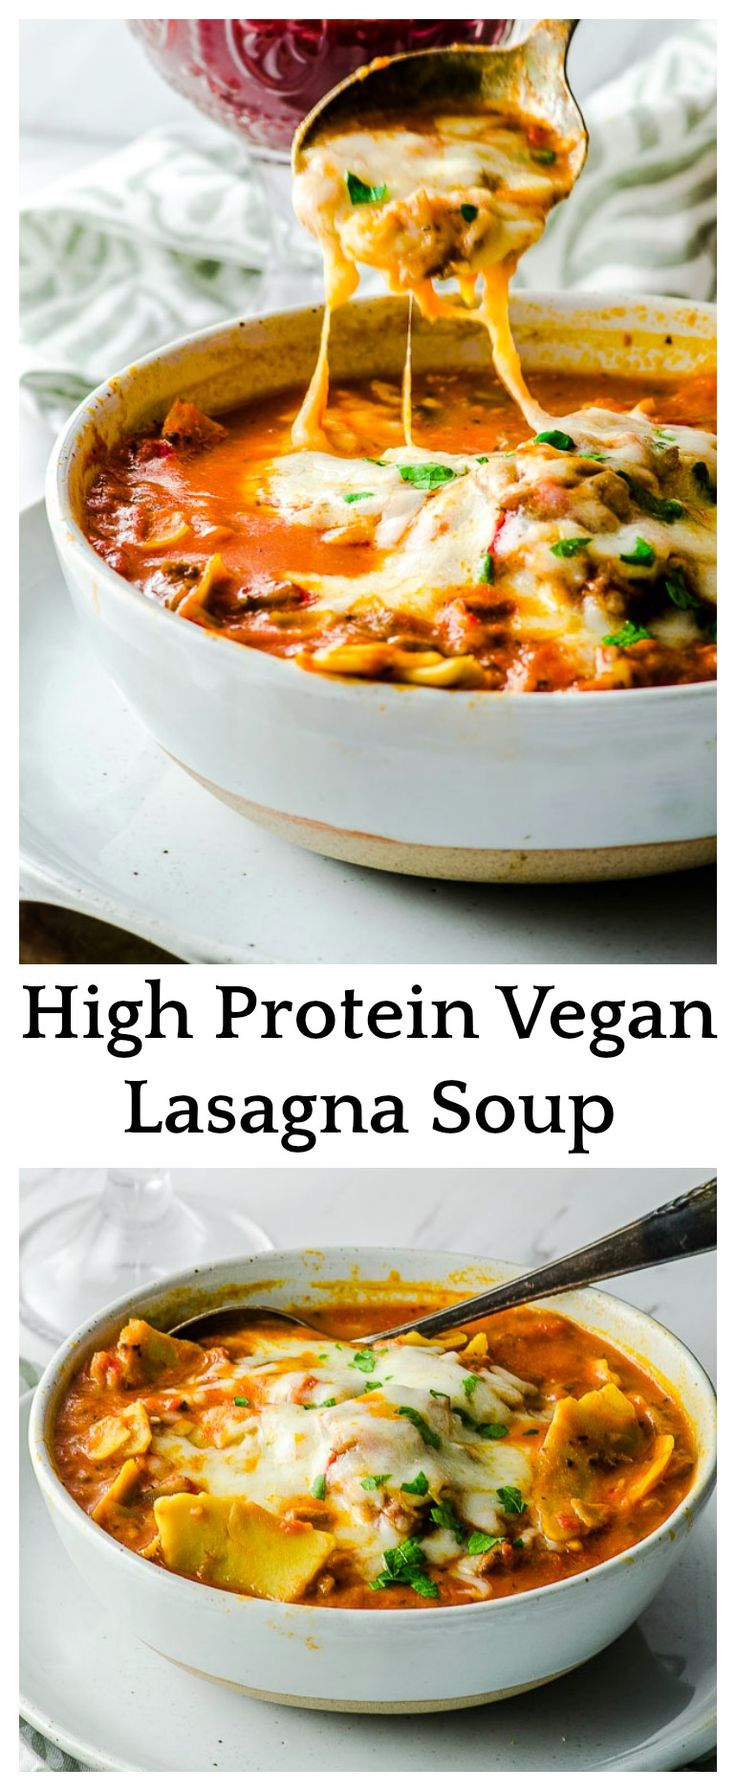 This thick and hearty Lasagna Soup is packed with fiber plant based protein. Vegan and gluten free, is a comforting a satisfying meal in a bowl! via @mayihavethatrecipe